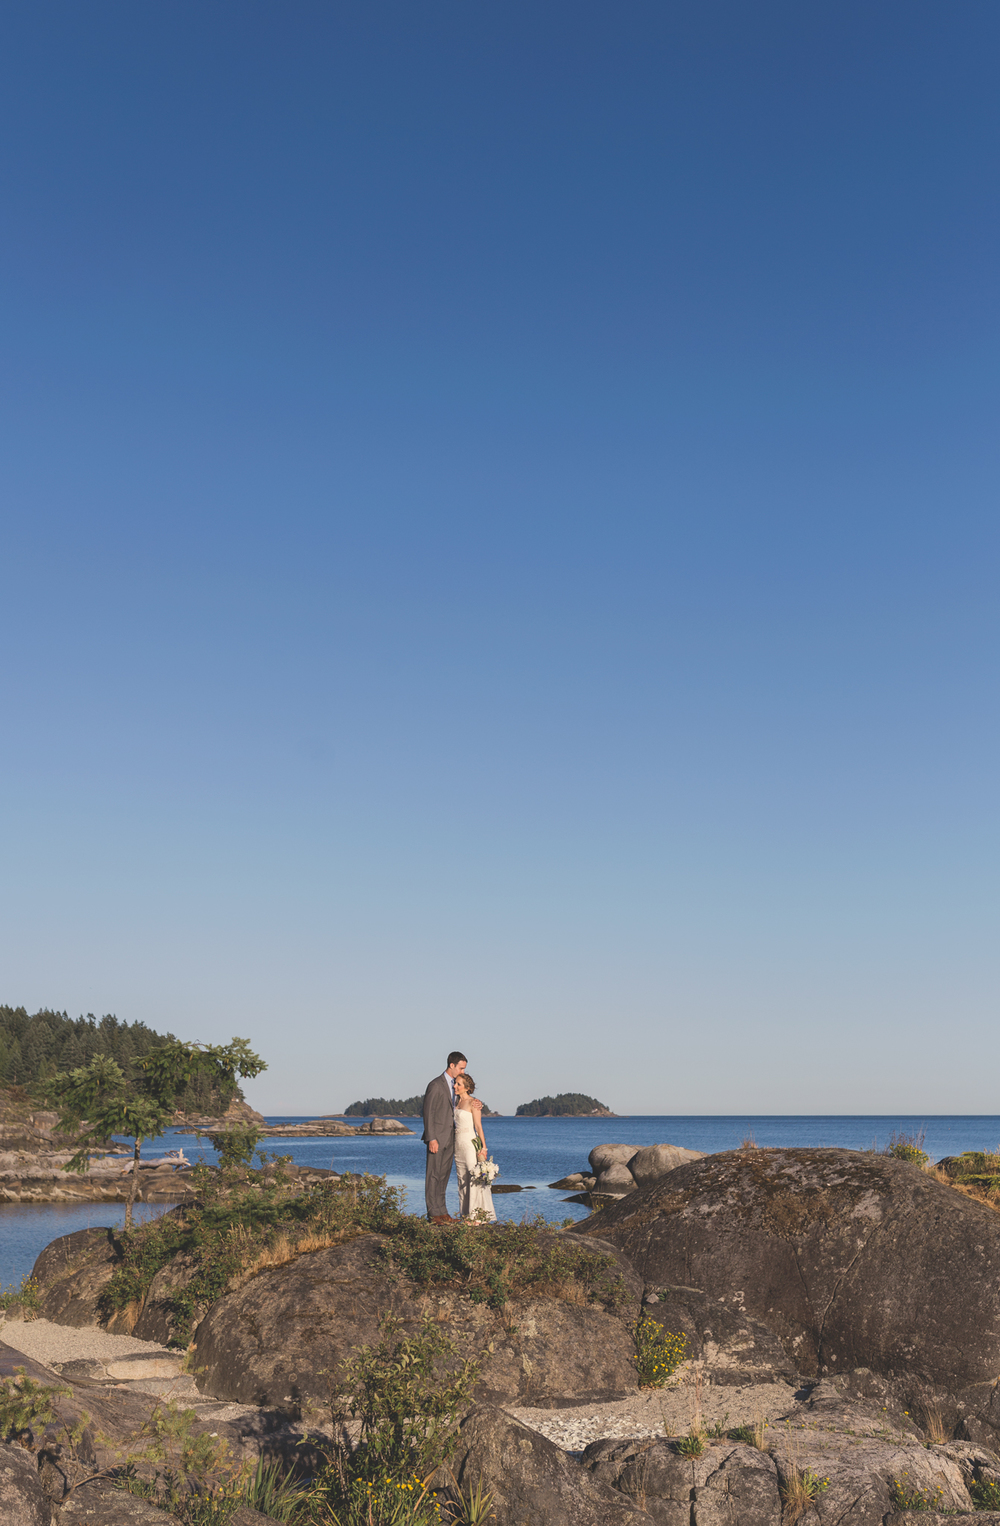 IMG_1482-SUNSHINE-COAST-WEDDING-PHOTOGRAPHER-JENNIFER-PICARD-PHOTOGRAPHY.jpg